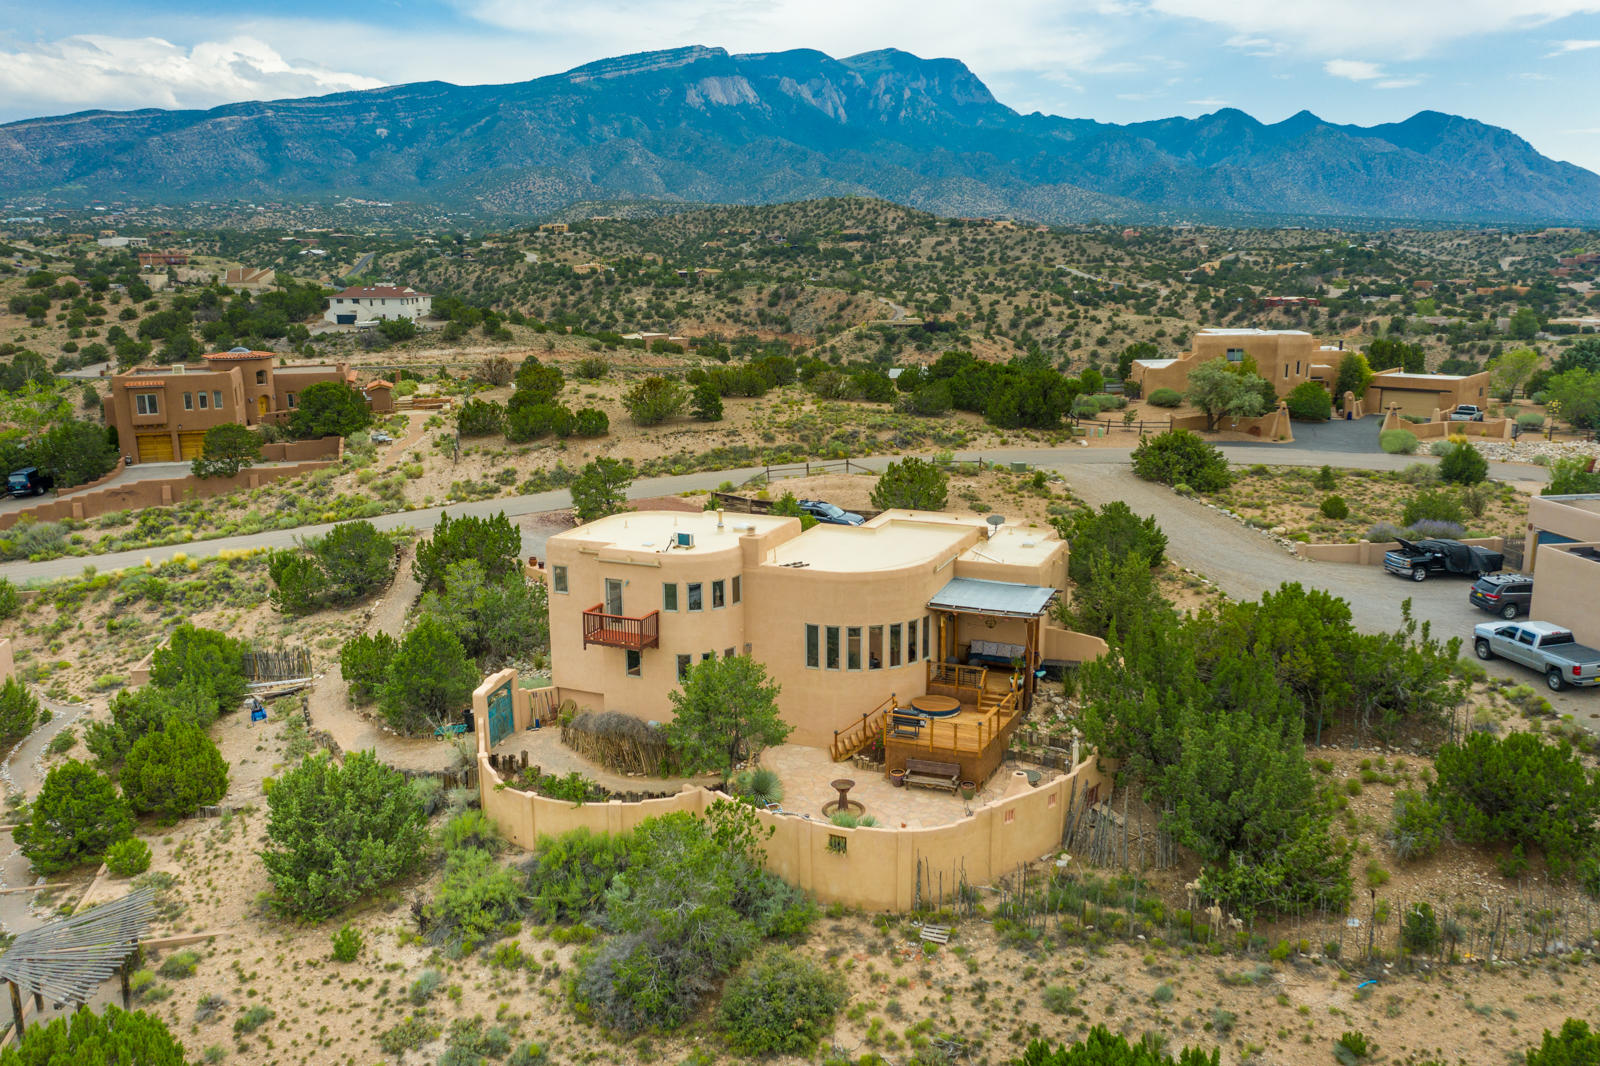 Amazing views of the mesa's capturing the extraordinary blues and purples changing with the light. This beautifully updated home features  a flowing open design with wood and tile floors. The soaring ceilings reflect the southwest architecture wood and beamed ceilings and a charming kiva fireplace with banco's. The newly renovated kitchen has stainless appliances, granite counters and island. A large eating space overlooks the living room and beyond to the views. The large, private primary suite is upstairs offering complete privacy, walk in closet, full bath with separate shower, a reading nook and balcony.  The two guest suites are tucked away downstairs with a Jack and Jill bath. Plenty of out door space with a multi-level deck, separate dog run and parking for the RV.  New TPO Roof